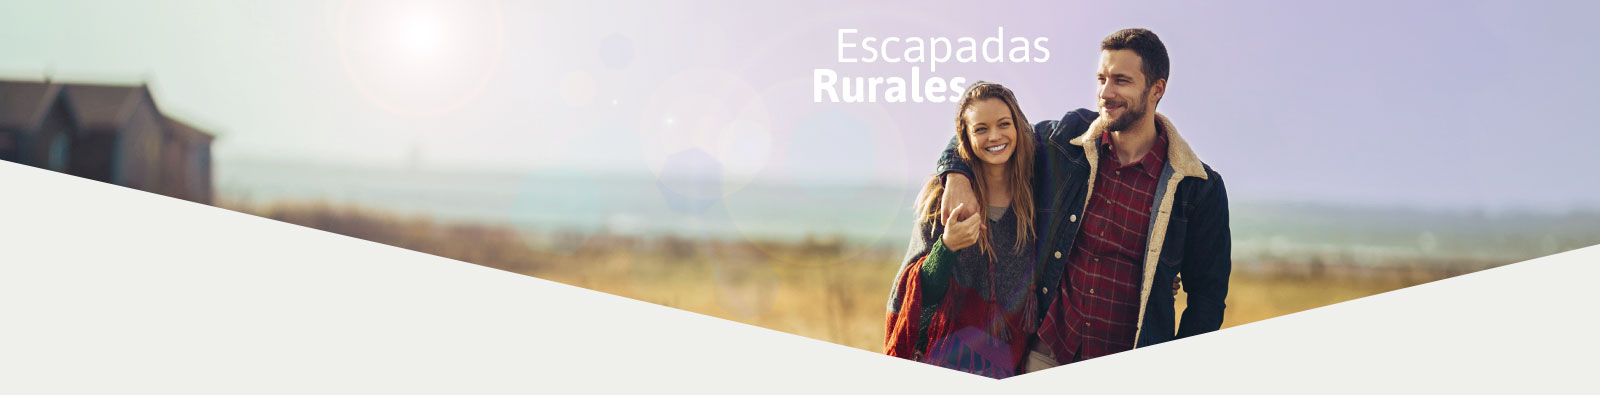 Escapadas Rurales